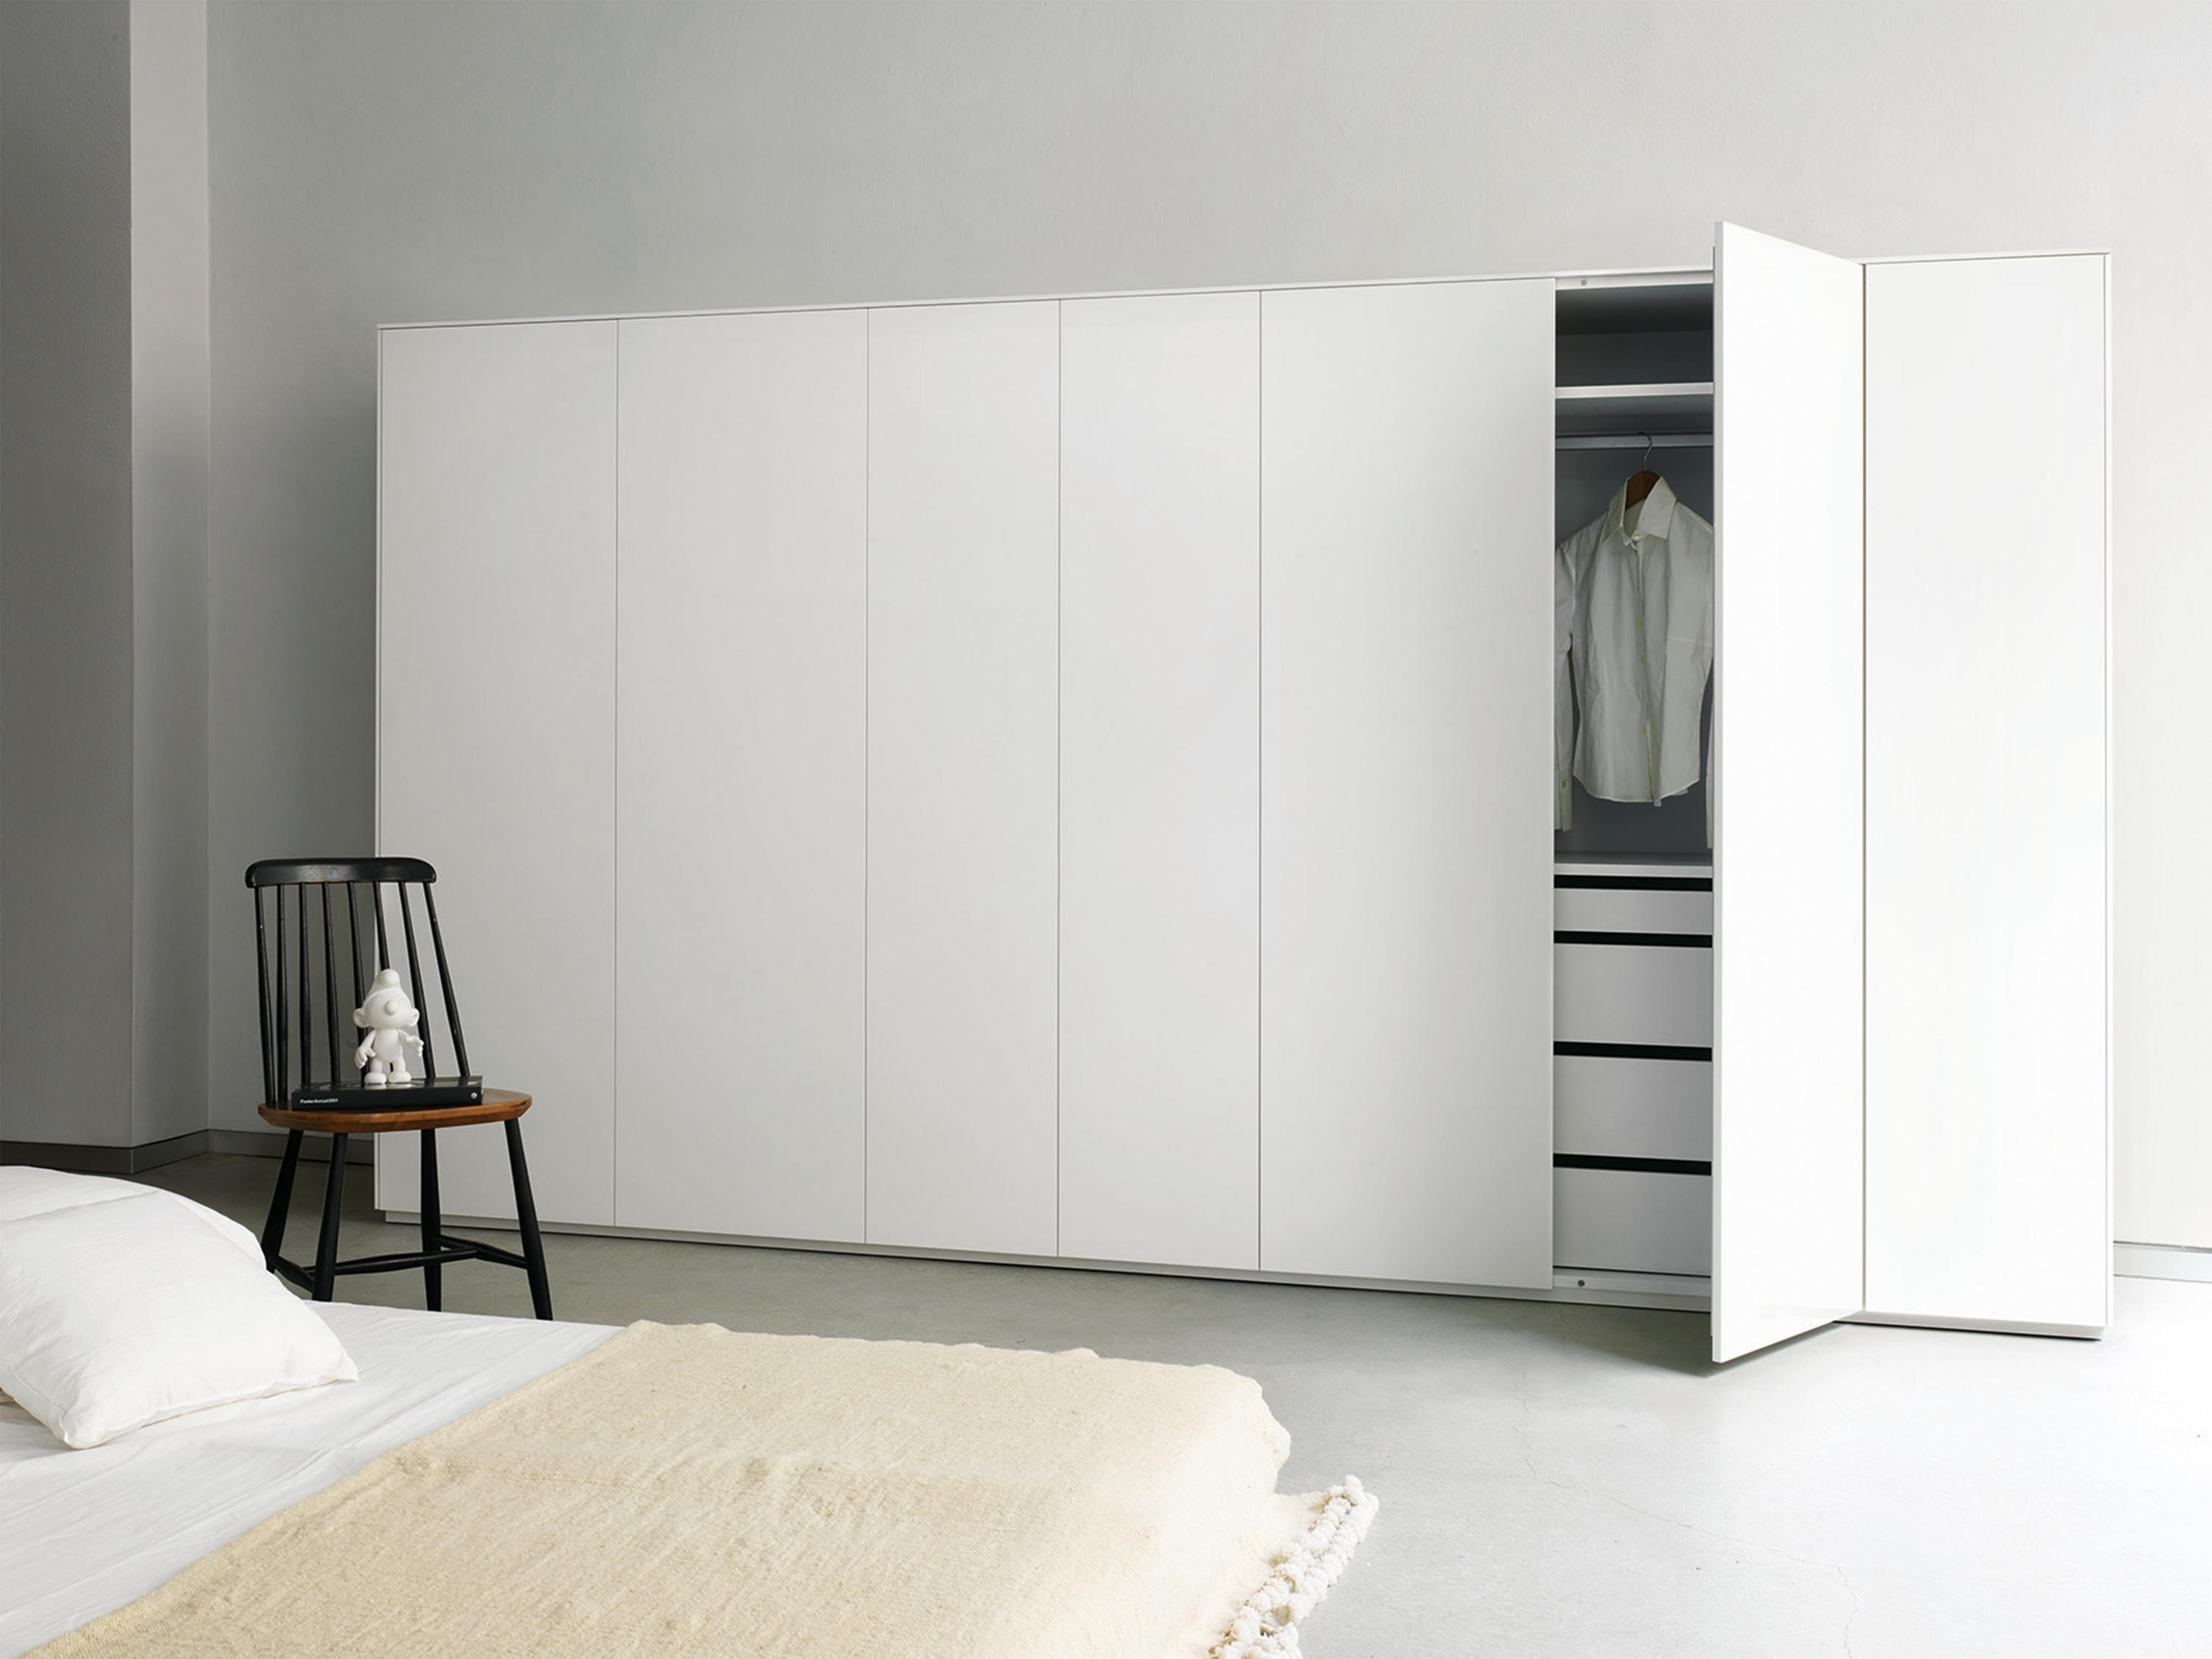 line schrank schr nke von piure architonic. Black Bedroom Furniture Sets. Home Design Ideas